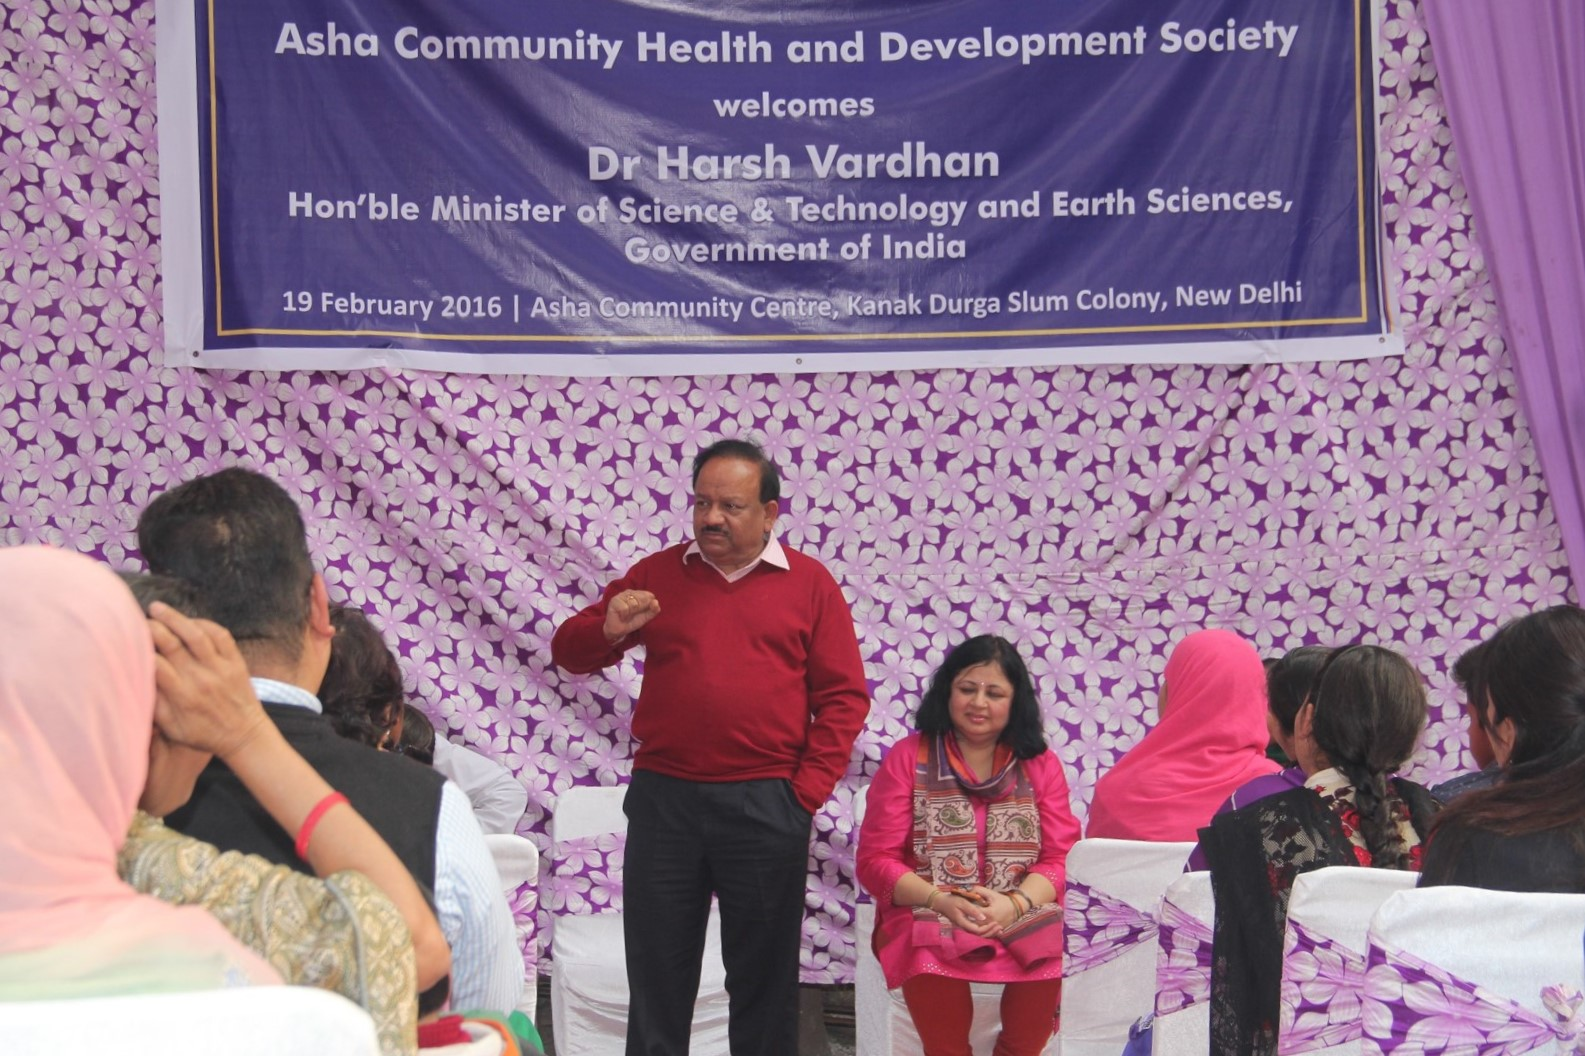 Dr Harsh Vardhan addressing the gathering